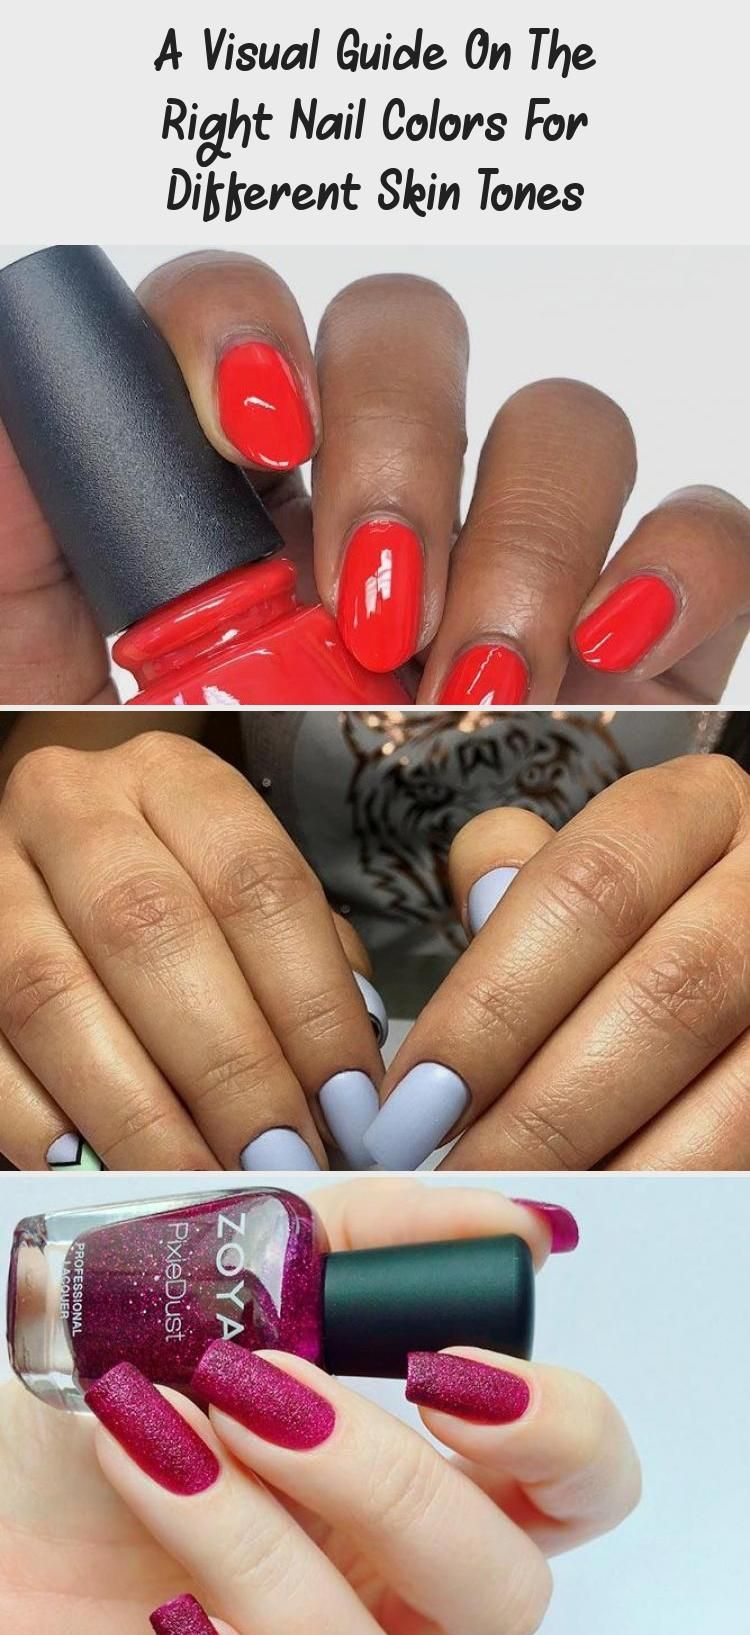 A Visual Guide On The Right Nail Colors For Different Skin